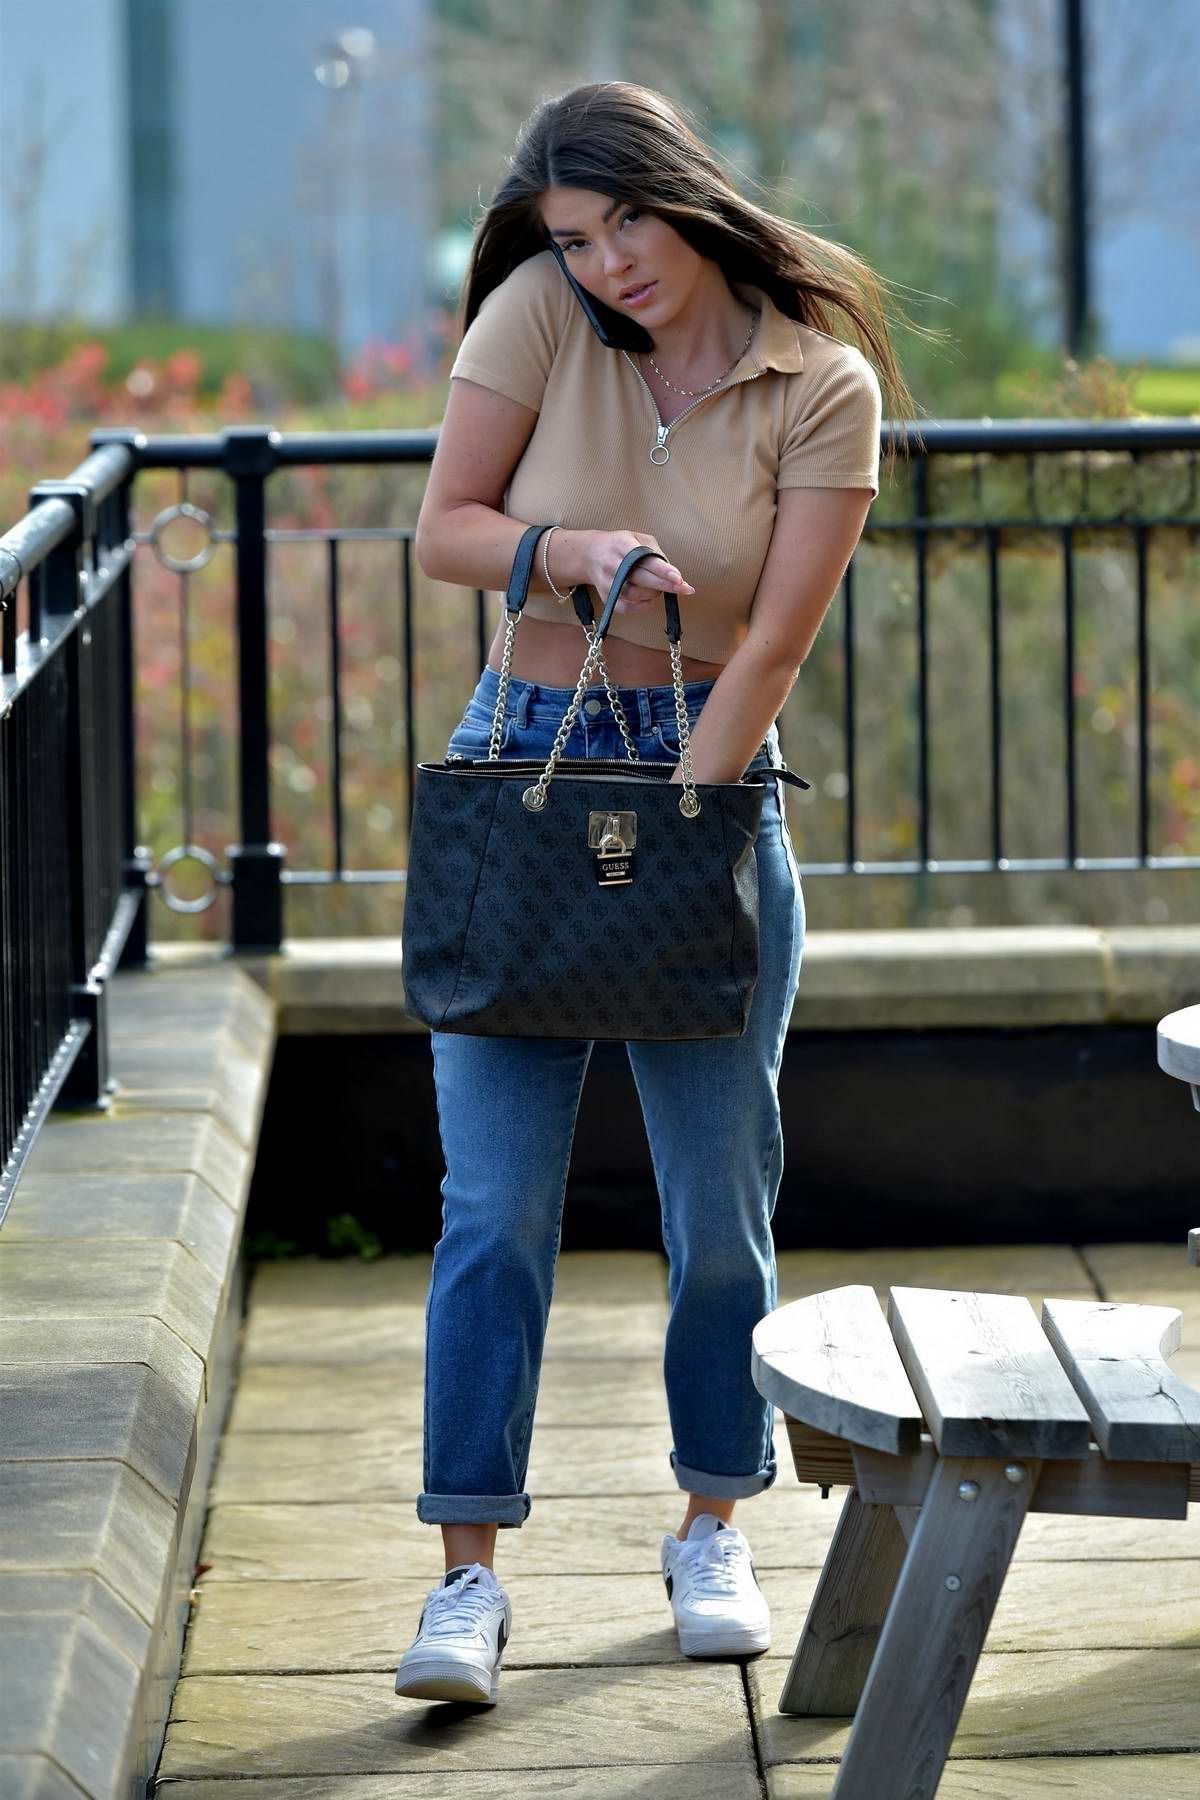 Rebecca Gormley wears a beige crop top and jeans as she leaves her home in Newcastle, UK